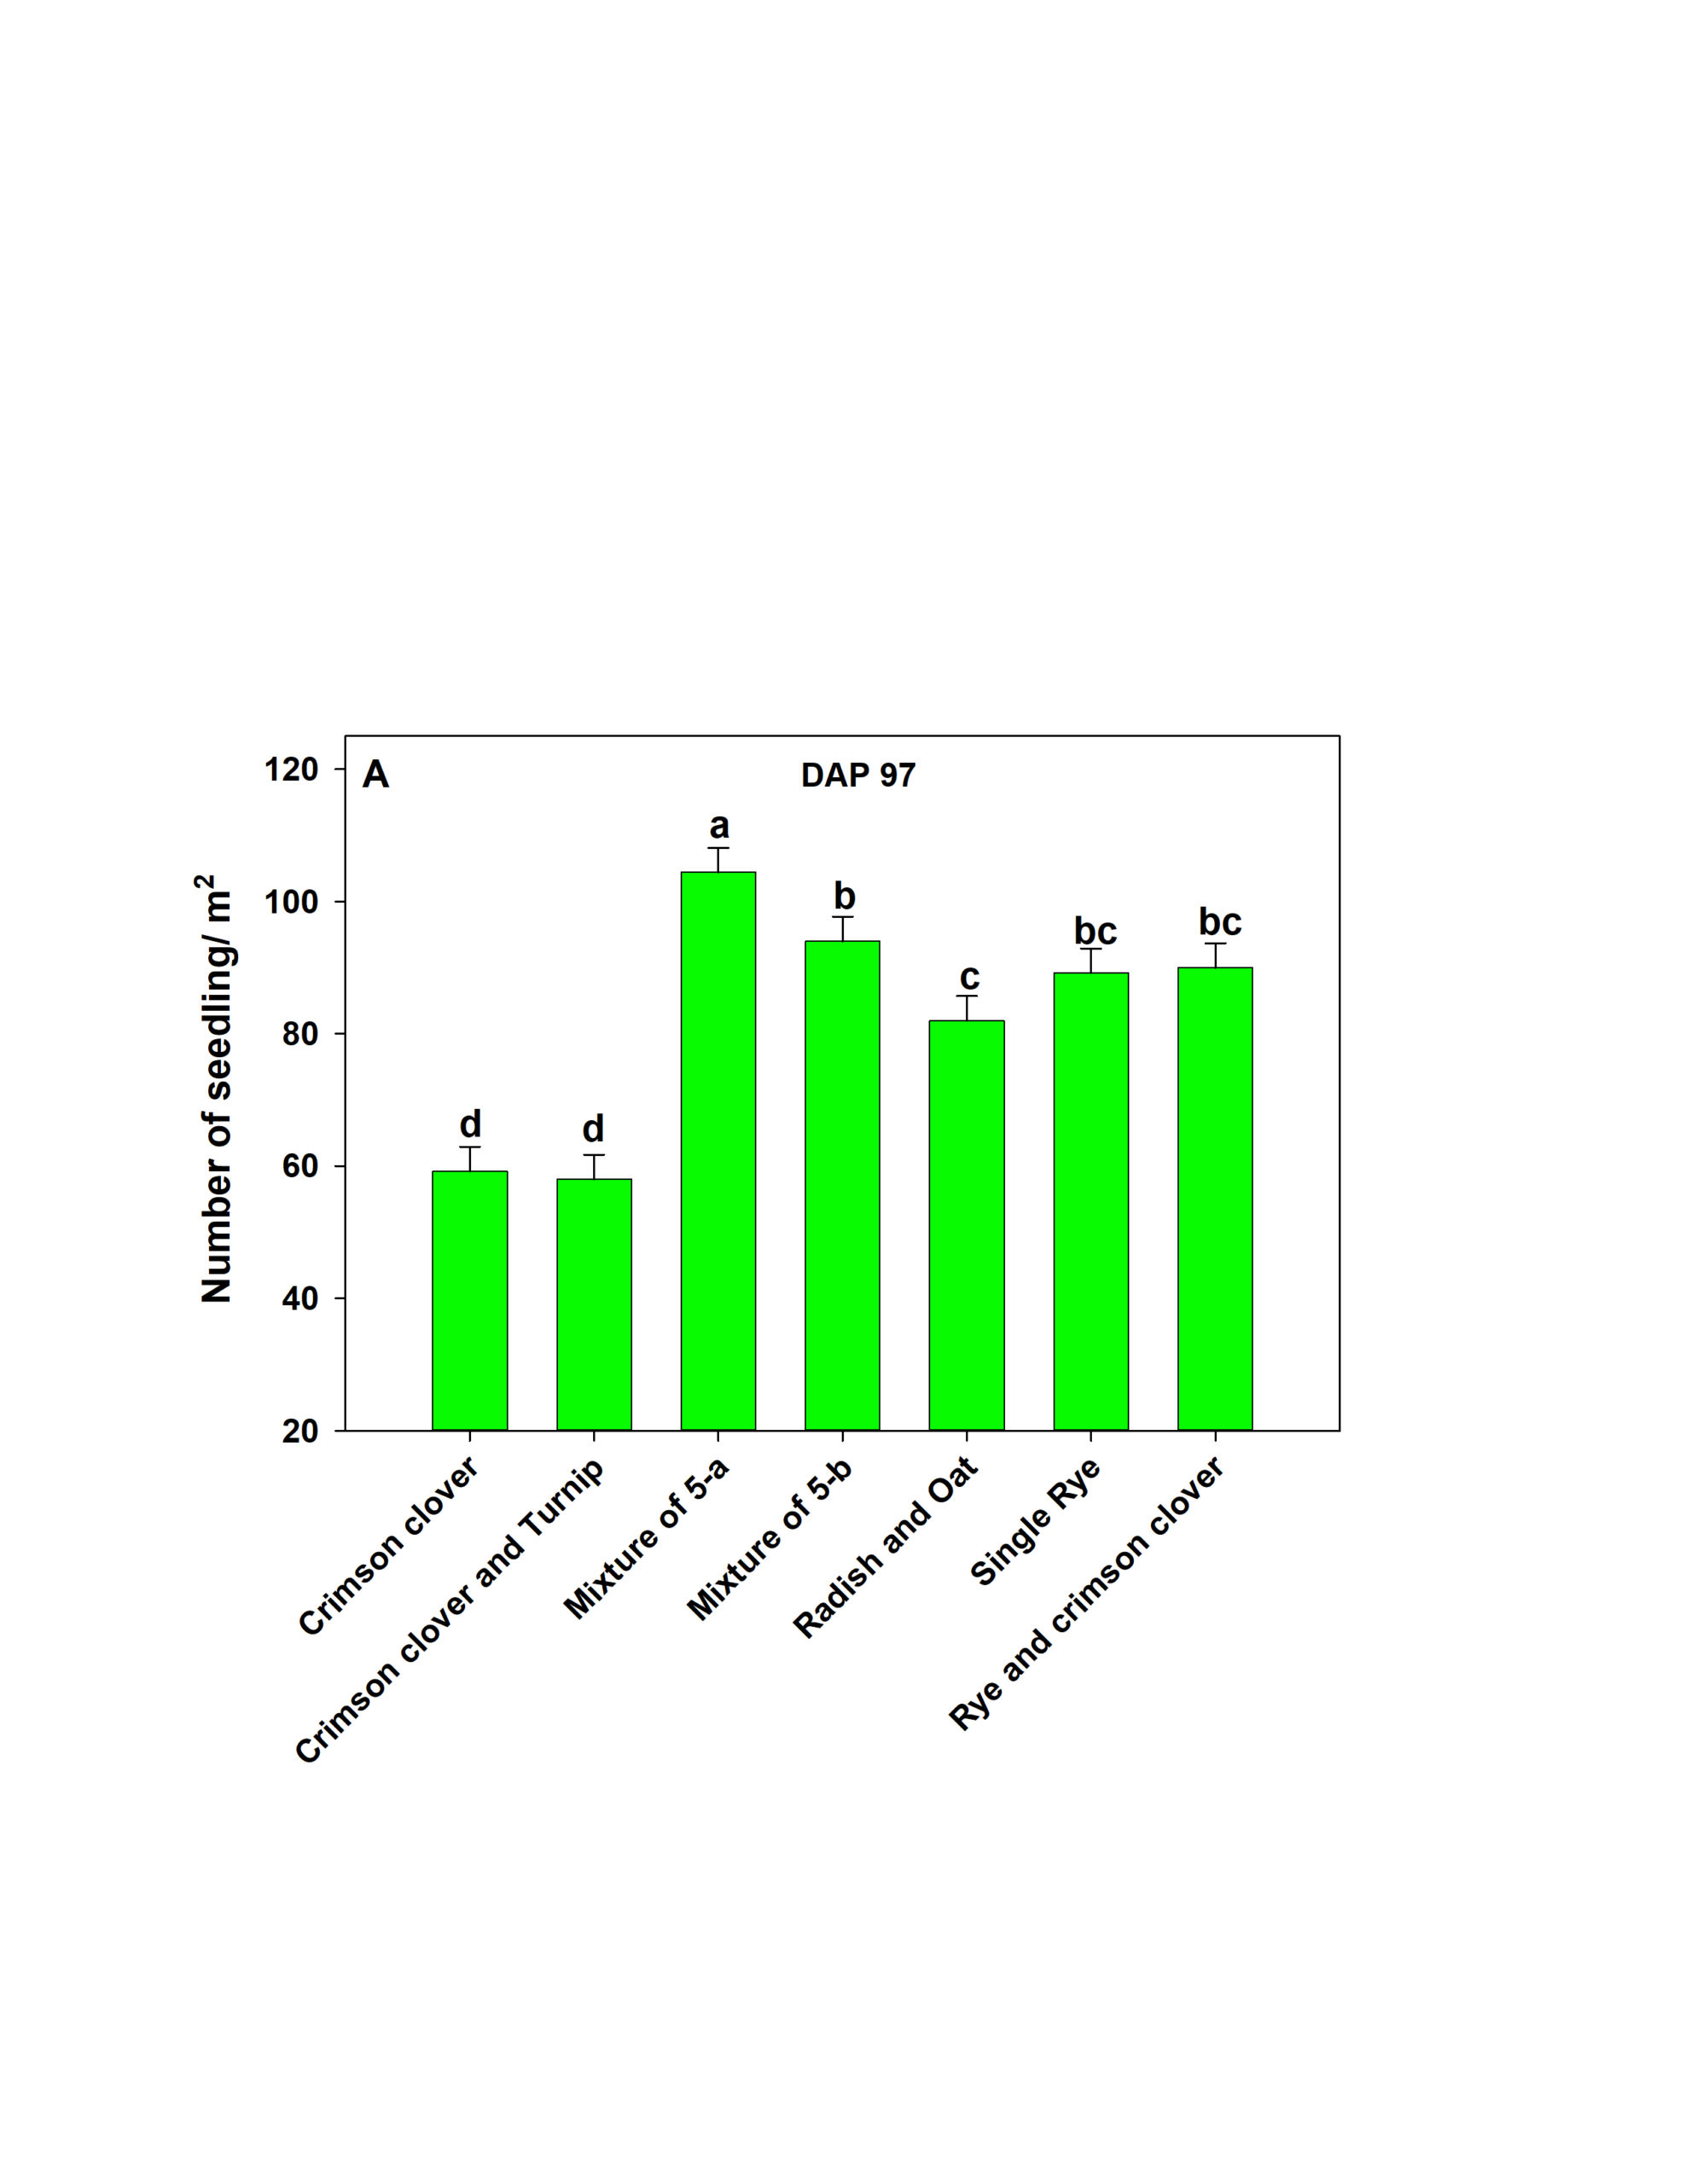 Figure 1. Stand establishment of different cover crops on February 3, 2020. DAP- Days after planting.